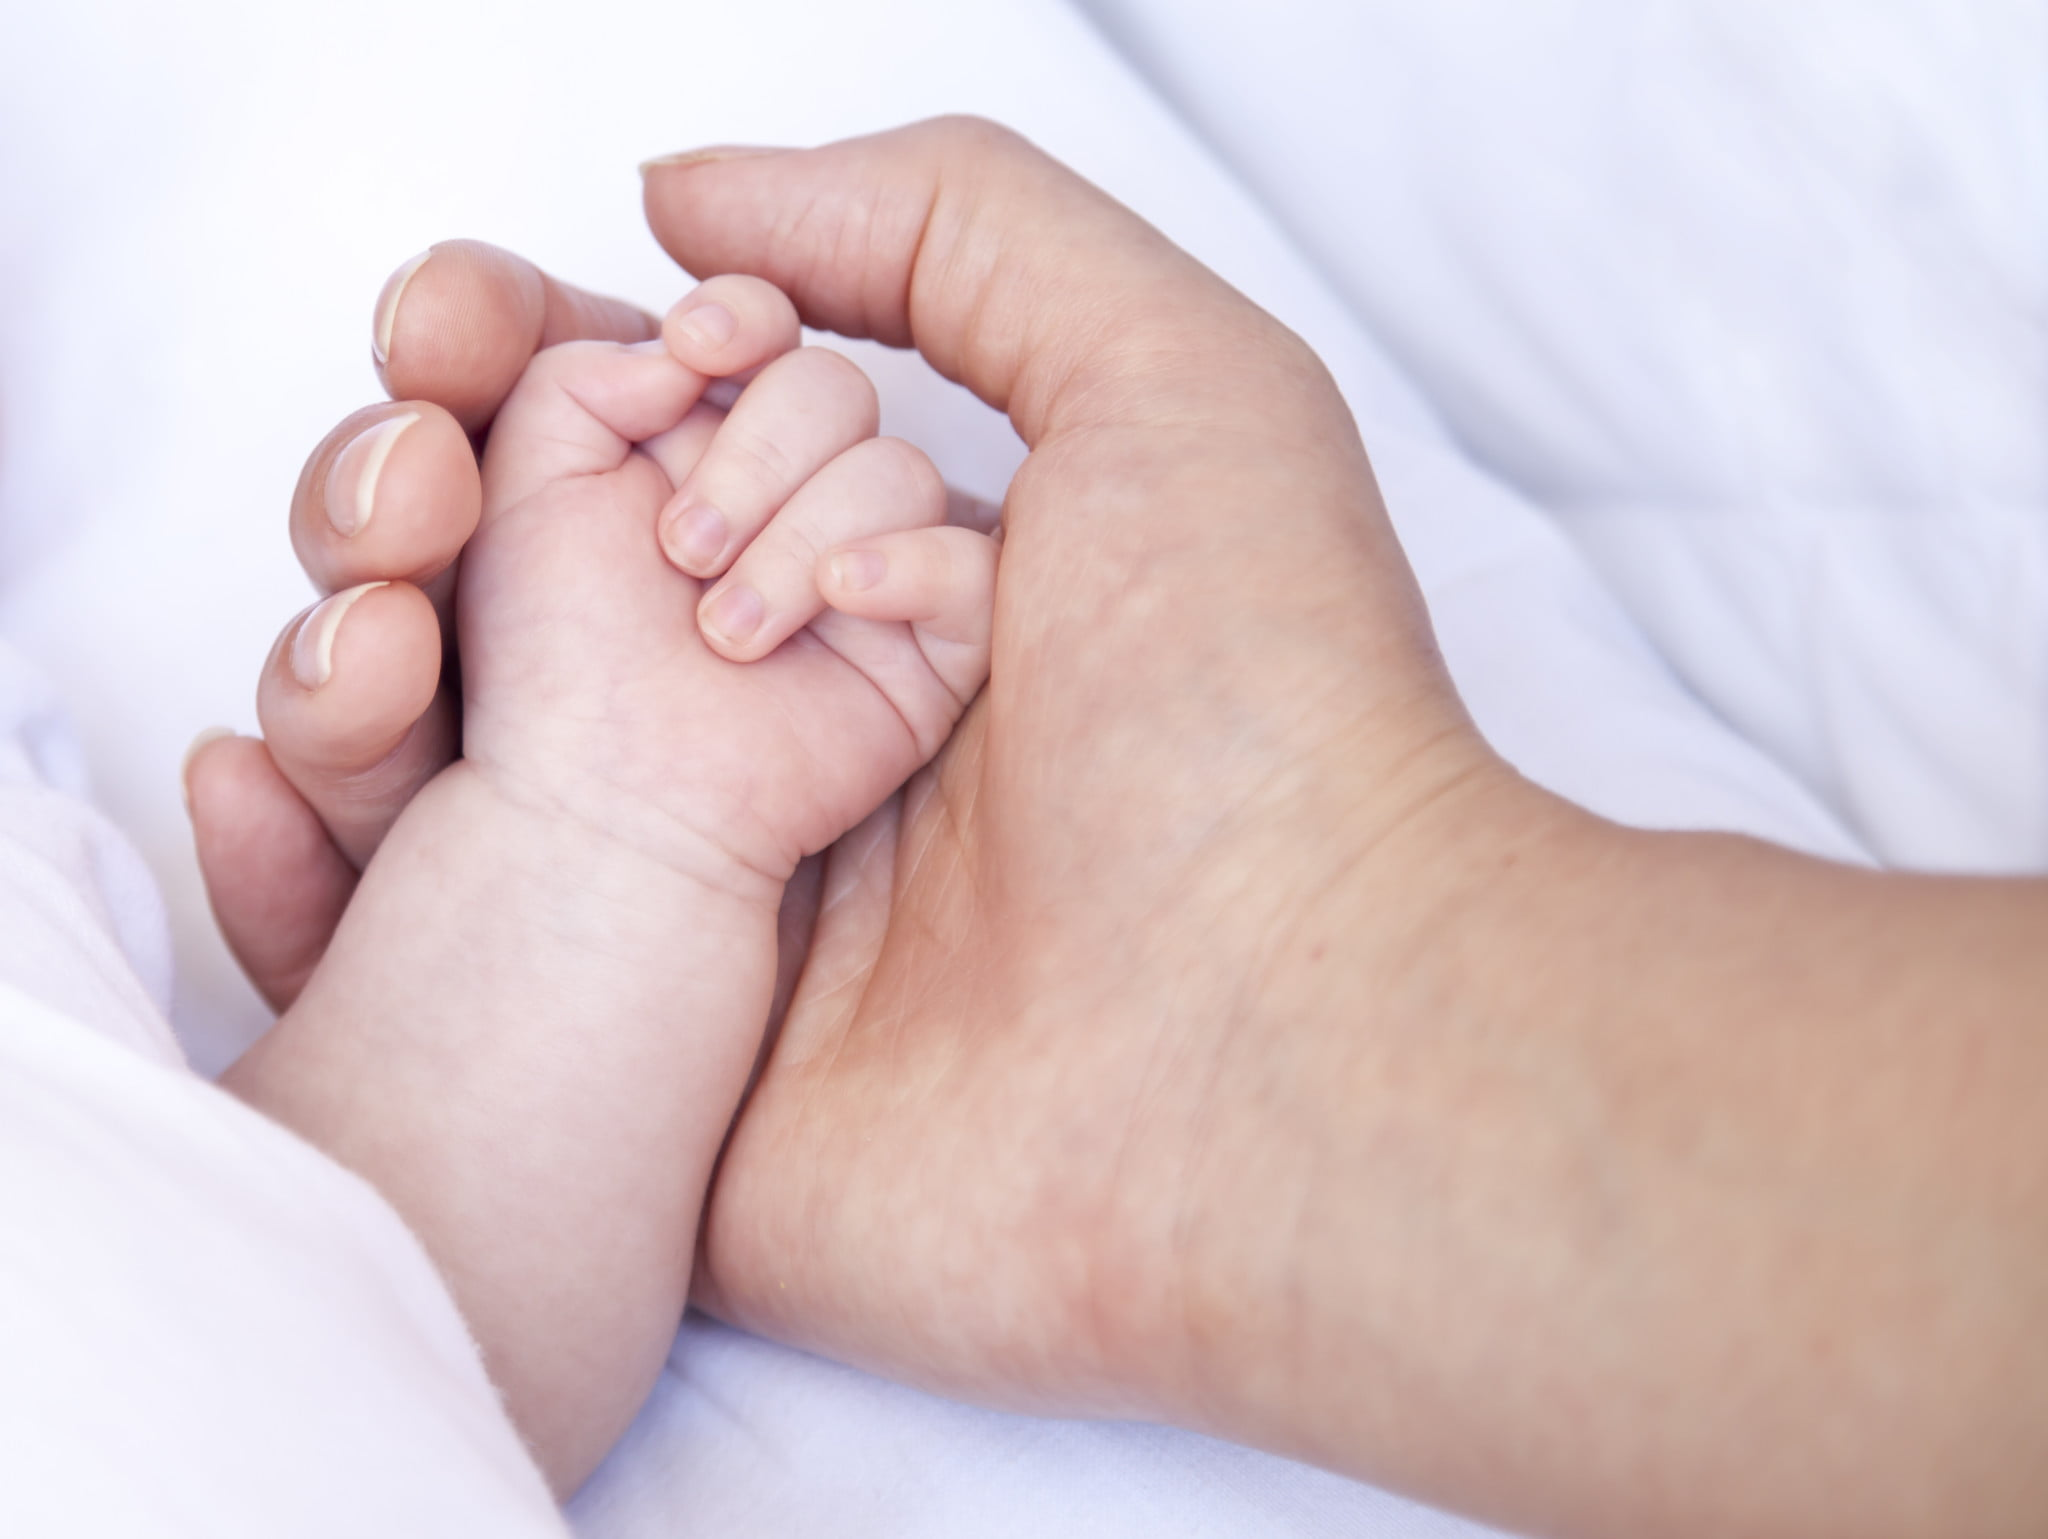 maternal deaths story: mother's hand holds baby's hand